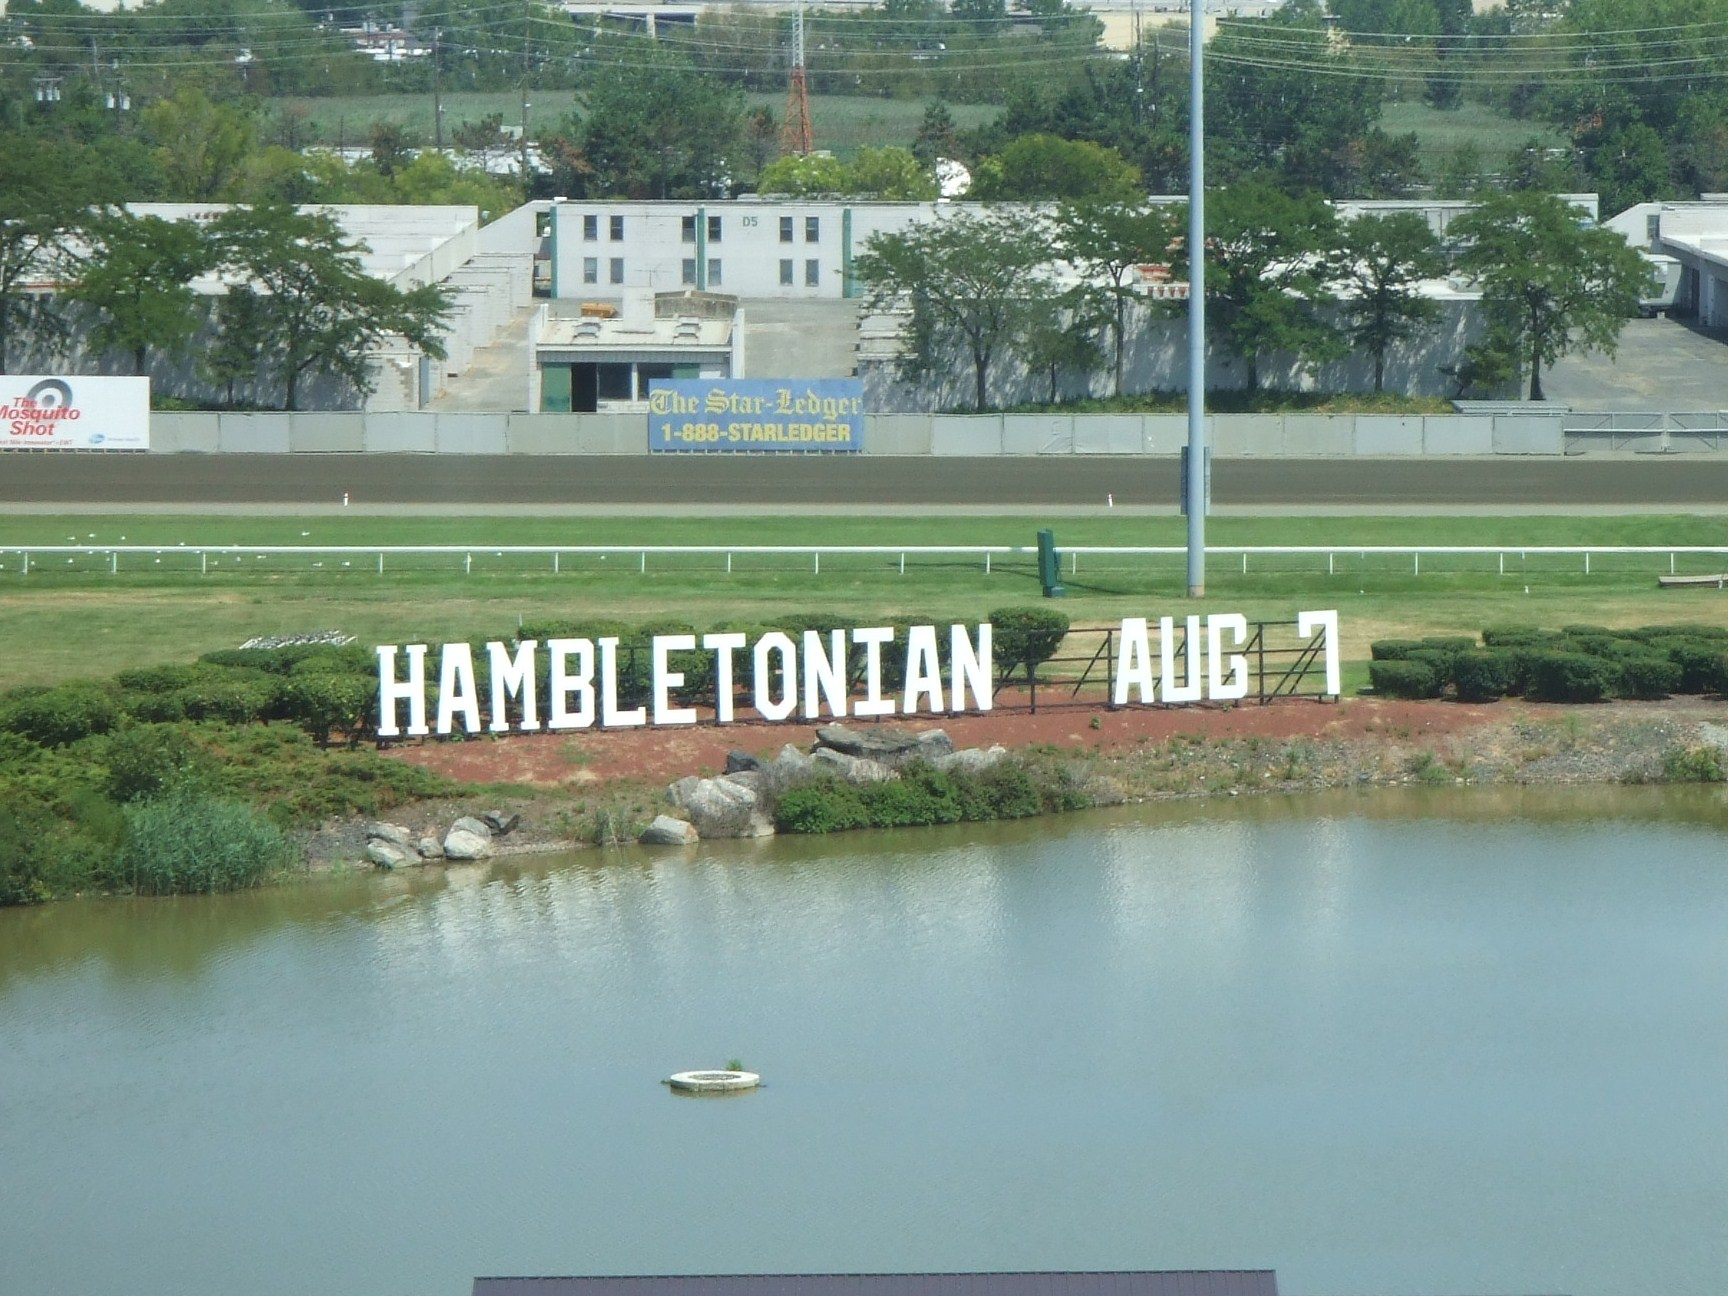 Hambletonian sign - close up.jpg